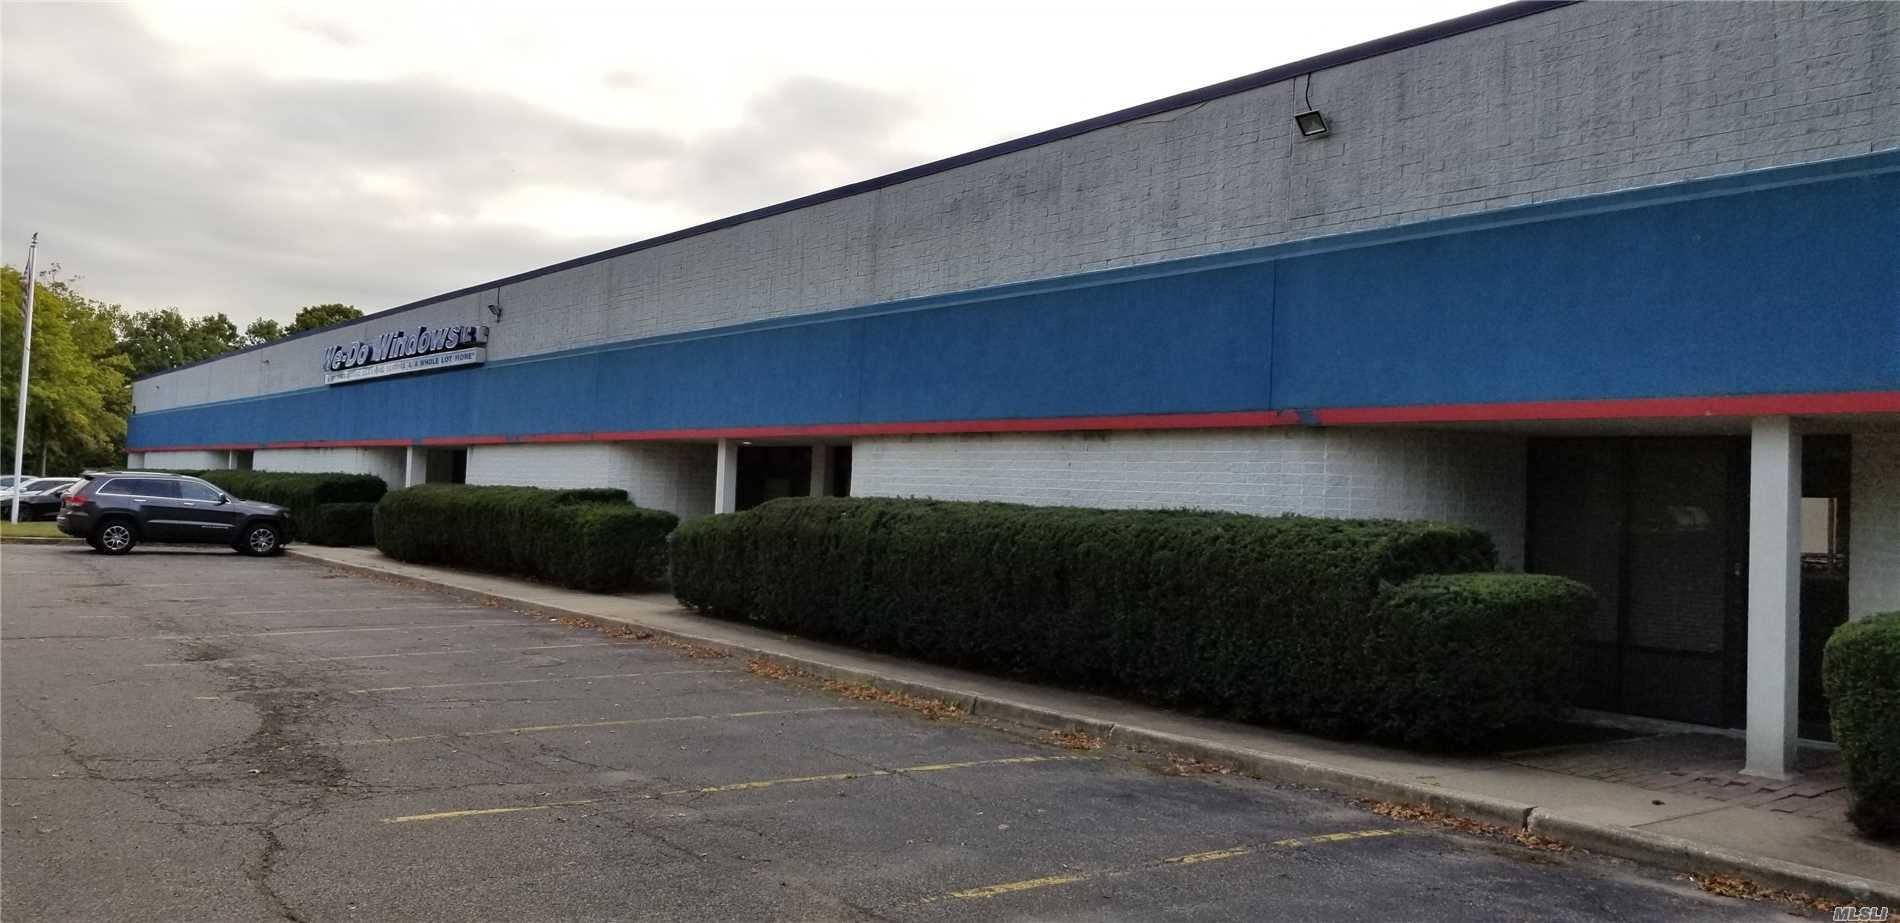 2000 Or 4000 Or 6000 Square Ft Units Available. Corner Of Route 101 Sills Rd And Old Dock Rd. Just About 1/2 Mile From The Long Island Expressway Route 495 @ Exit 66. Easy And Fast Access To Route 27 Sunrise Highway.